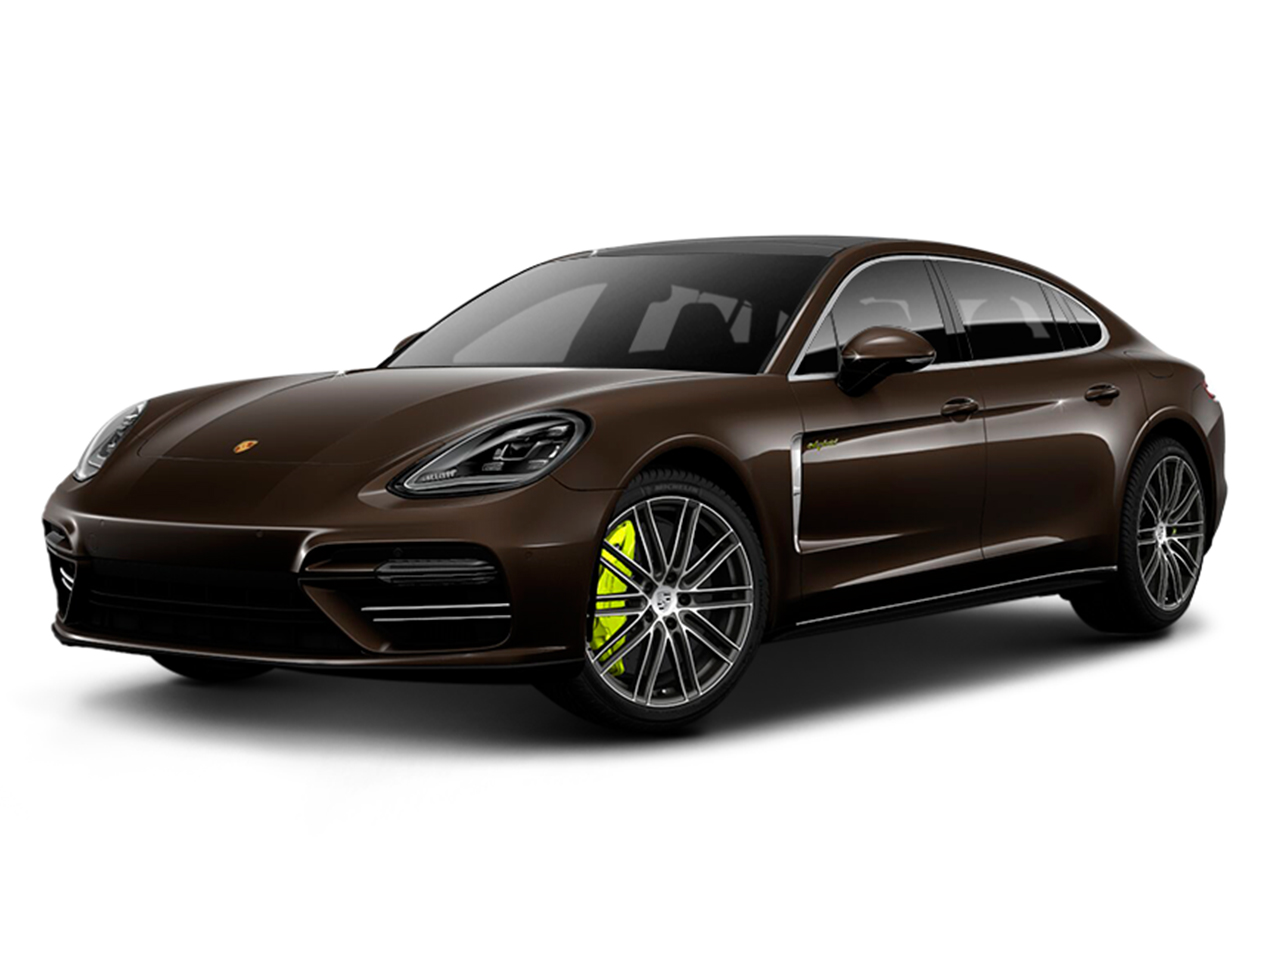 2018 porsche panamera prices in qatar gulf specs. Black Bedroom Furniture Sets. Home Design Ideas